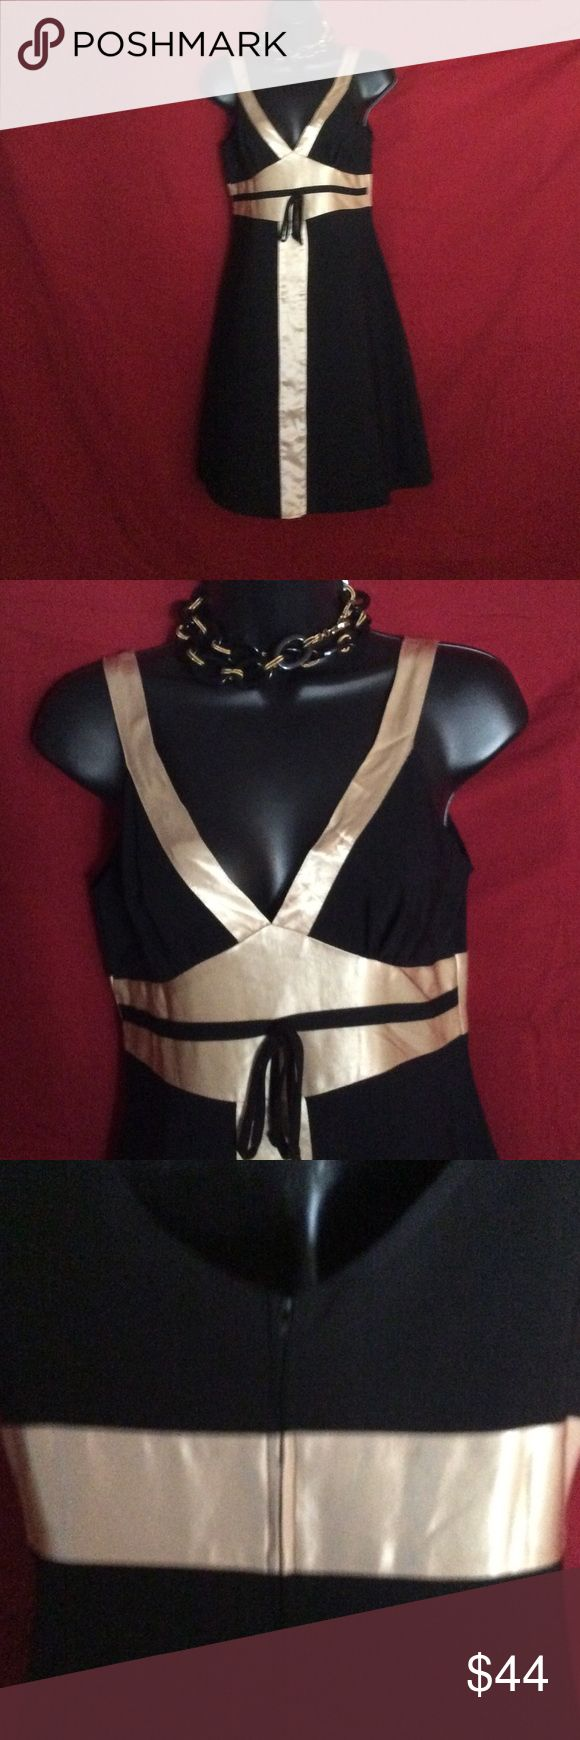 Selling this RUBY-ROX BLACK & GOLD DRESS W/TAGS NECKLACE EXTRA on Poshmark! My username is: stonetwisted. #shopmycloset #poshmark #fashion #shopping #style #forsale #Ruby Rox #Dresses & Skirts